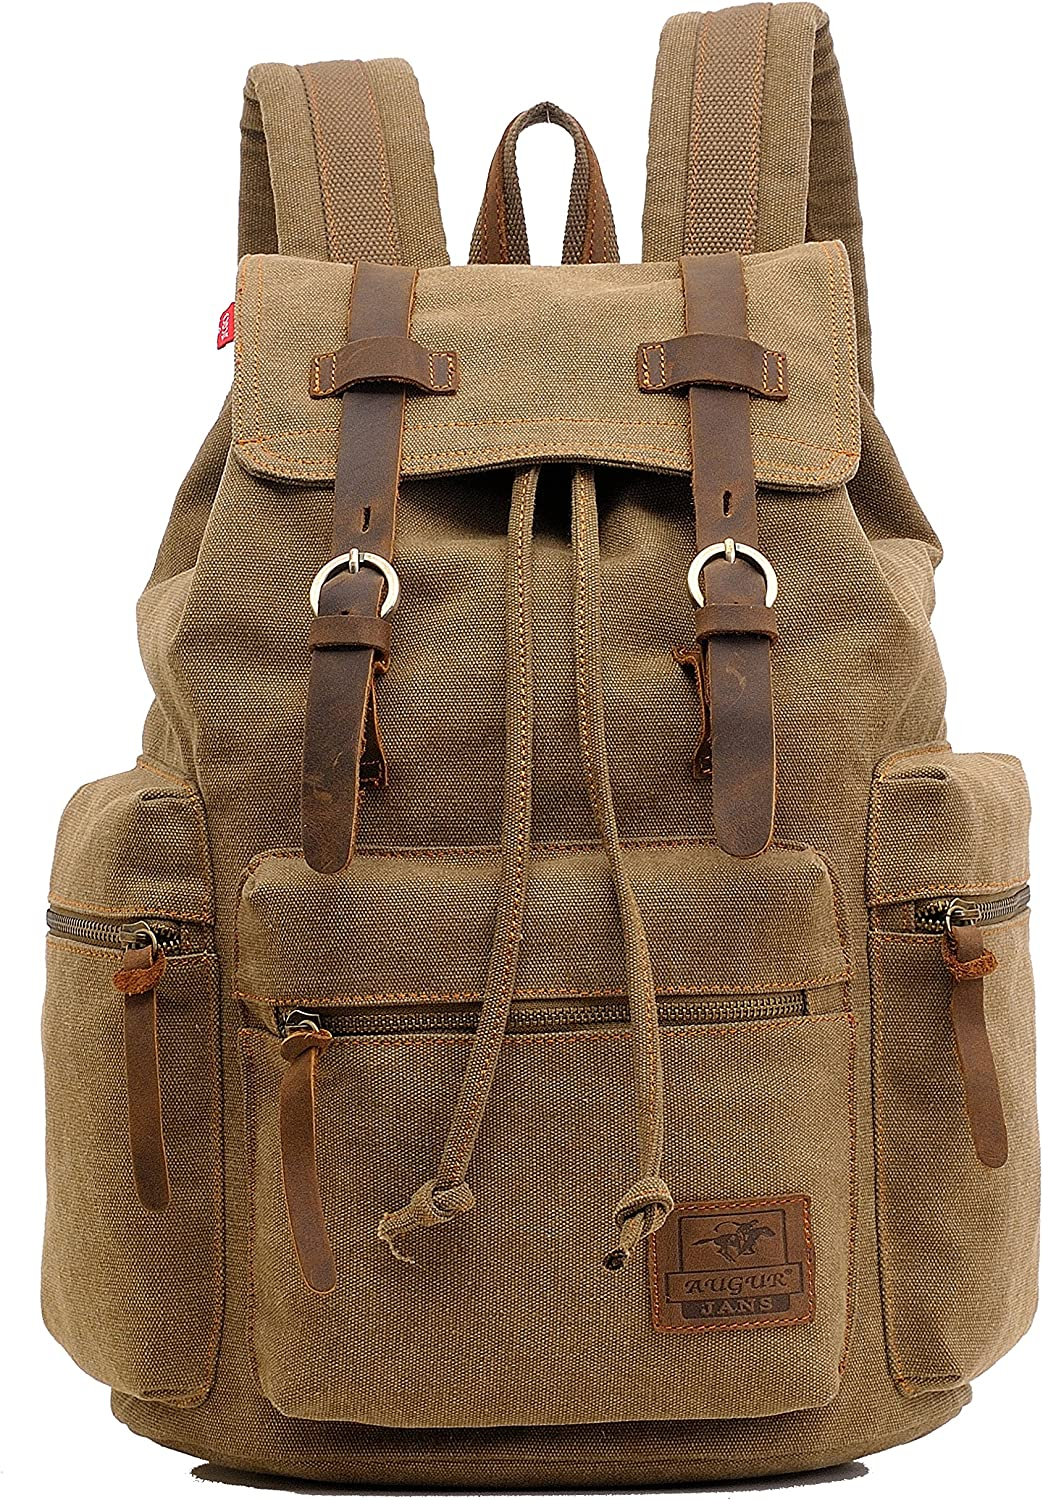 Genda 2Archer Multifunctional Canvas Backpack for Men and Women Light Brown